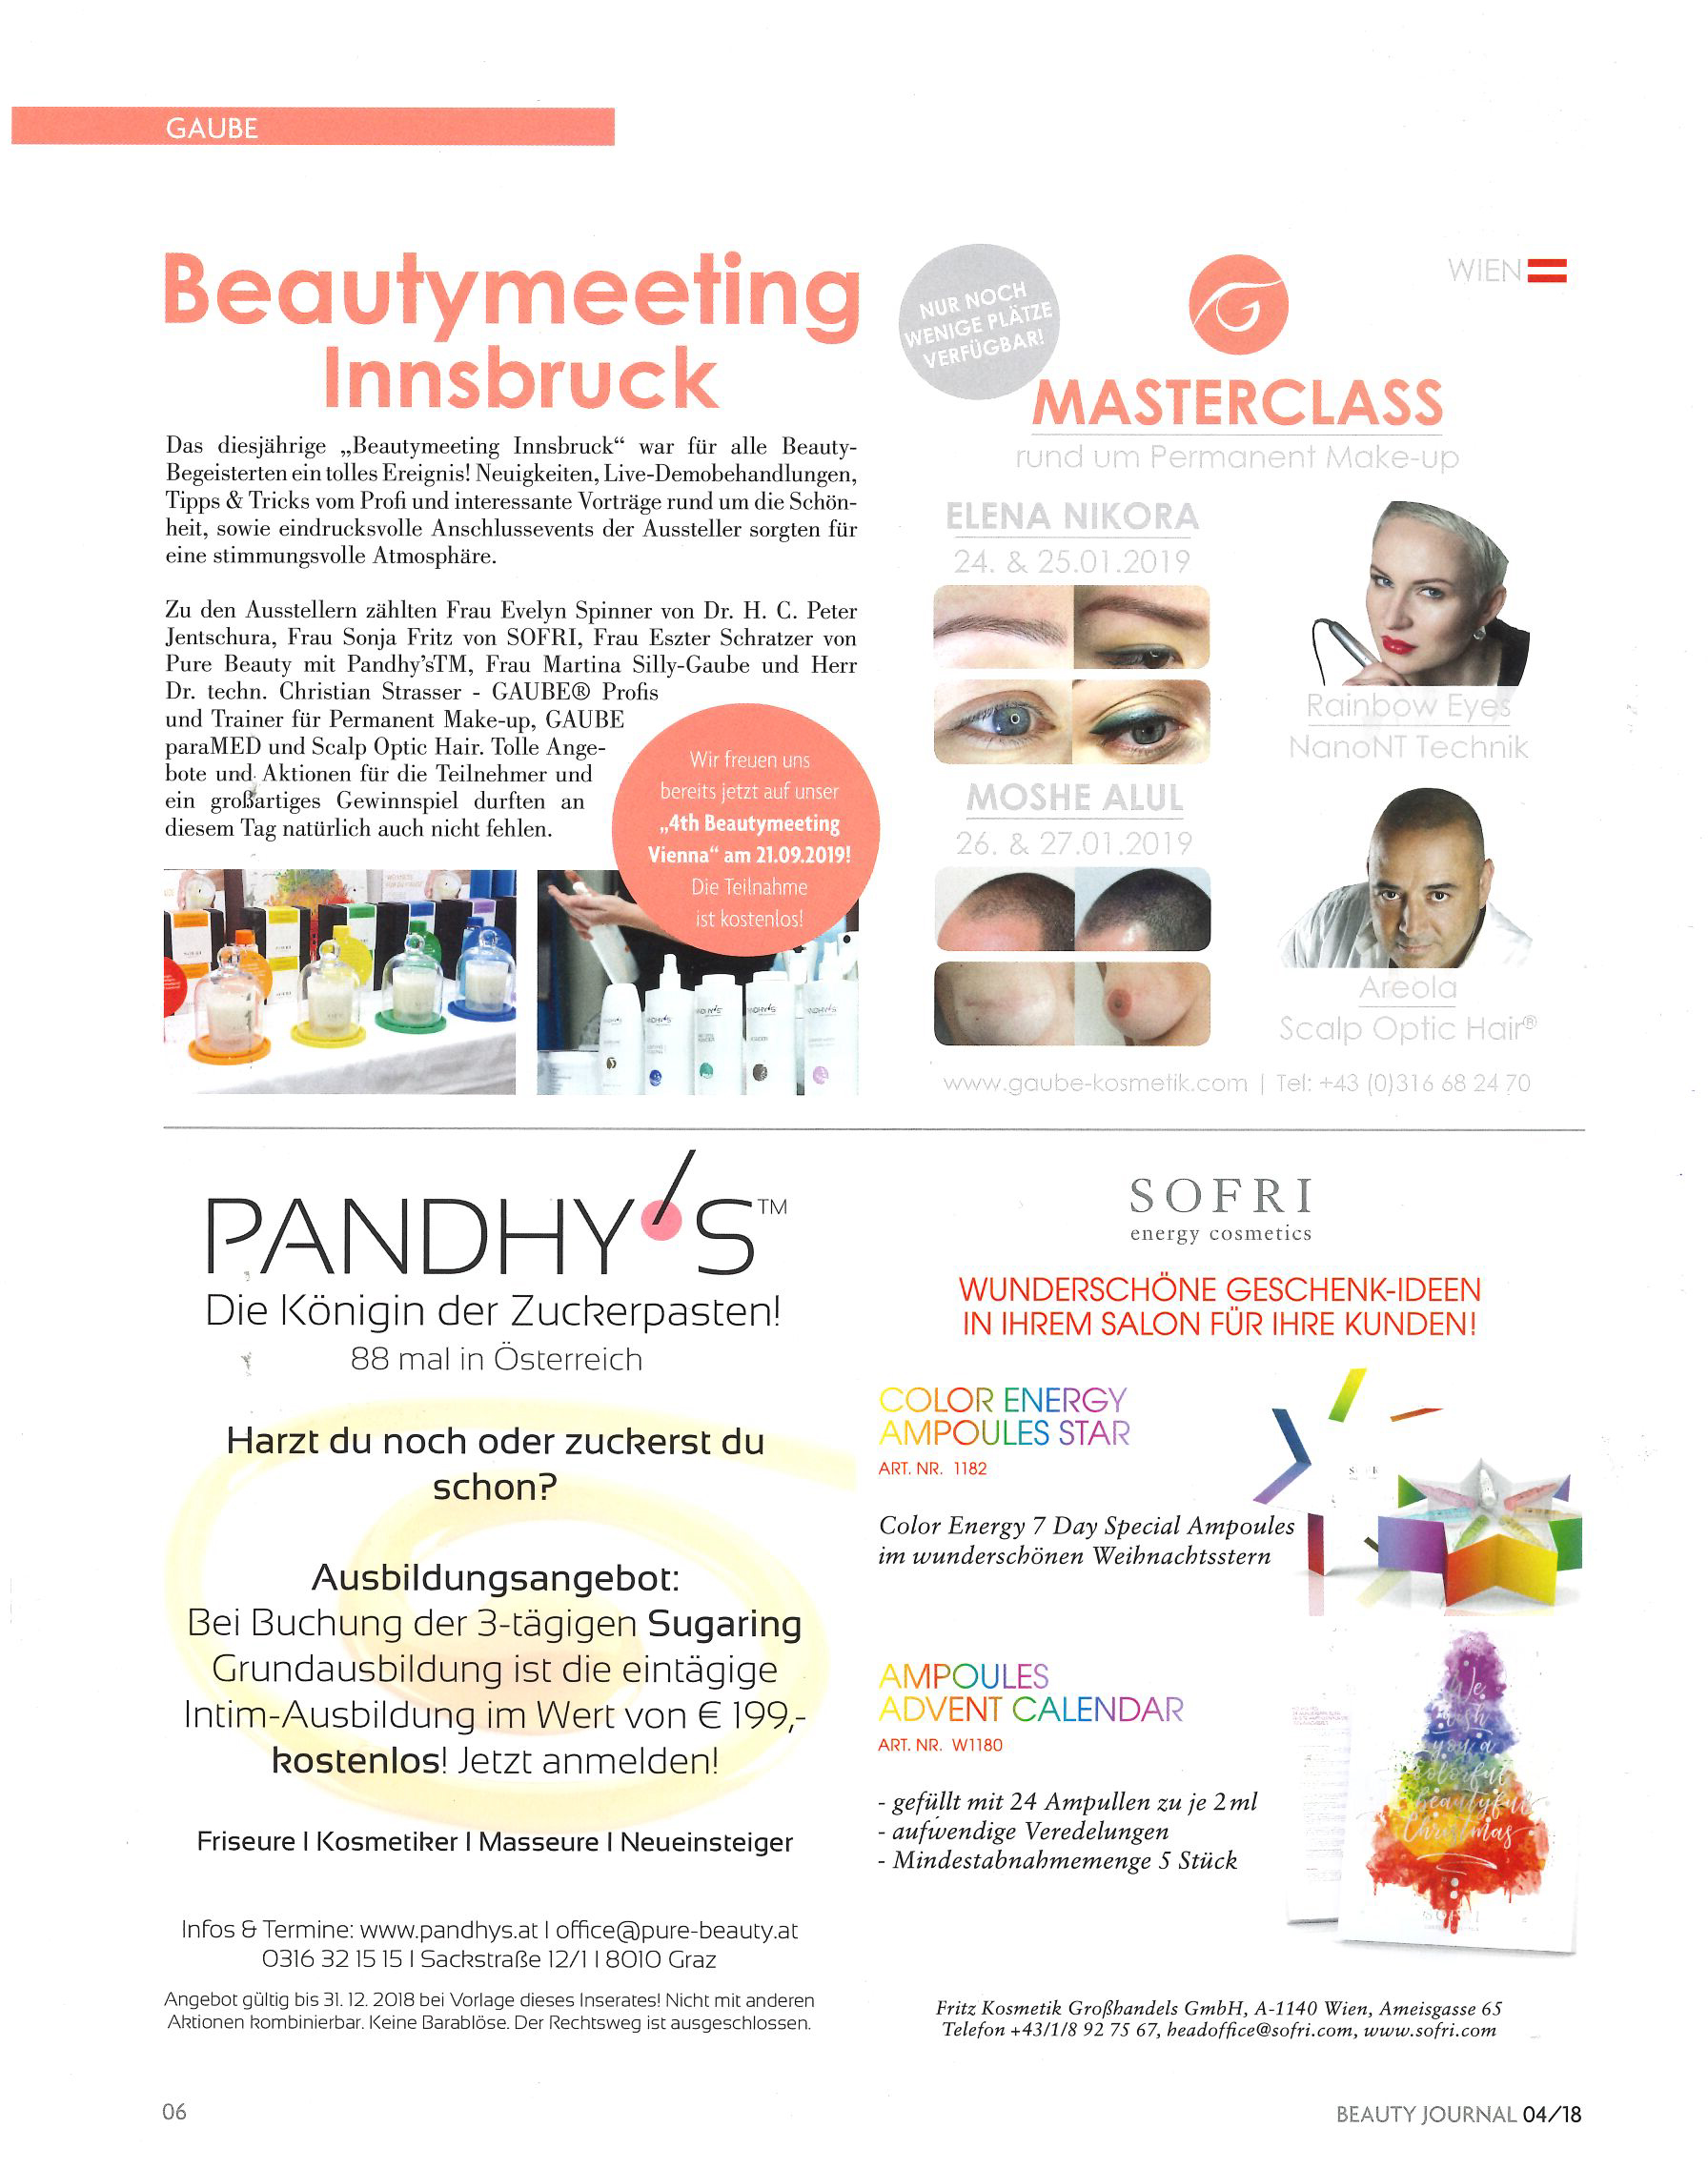 Beautymeeting Innsbruck, Beauty-Journal im Dezember 2018